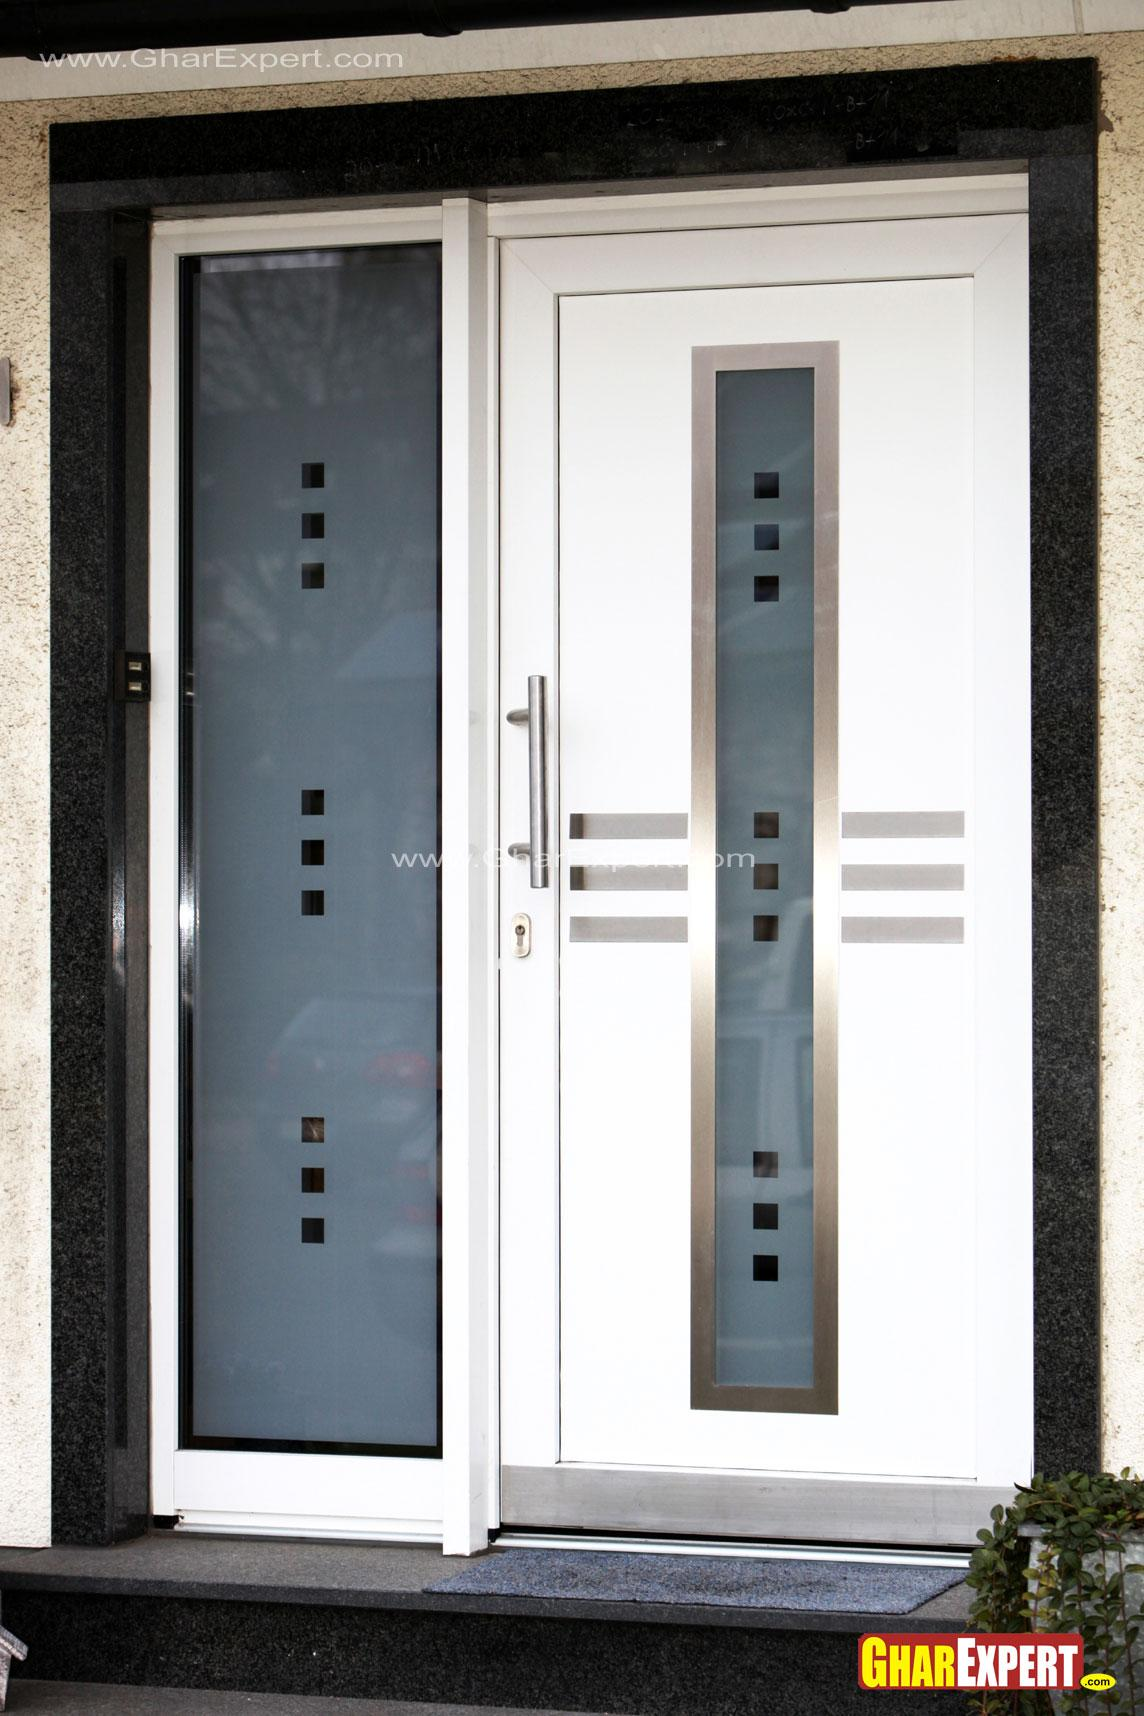 White Modern Entrance Door Design Gharexpert